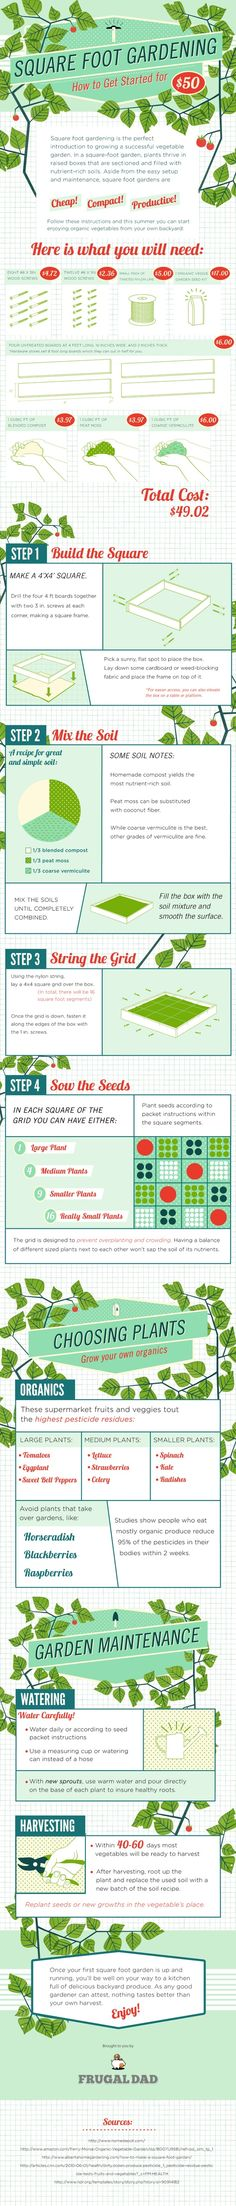 This great infographic shows you how to get started square foot gardening on the cheap!